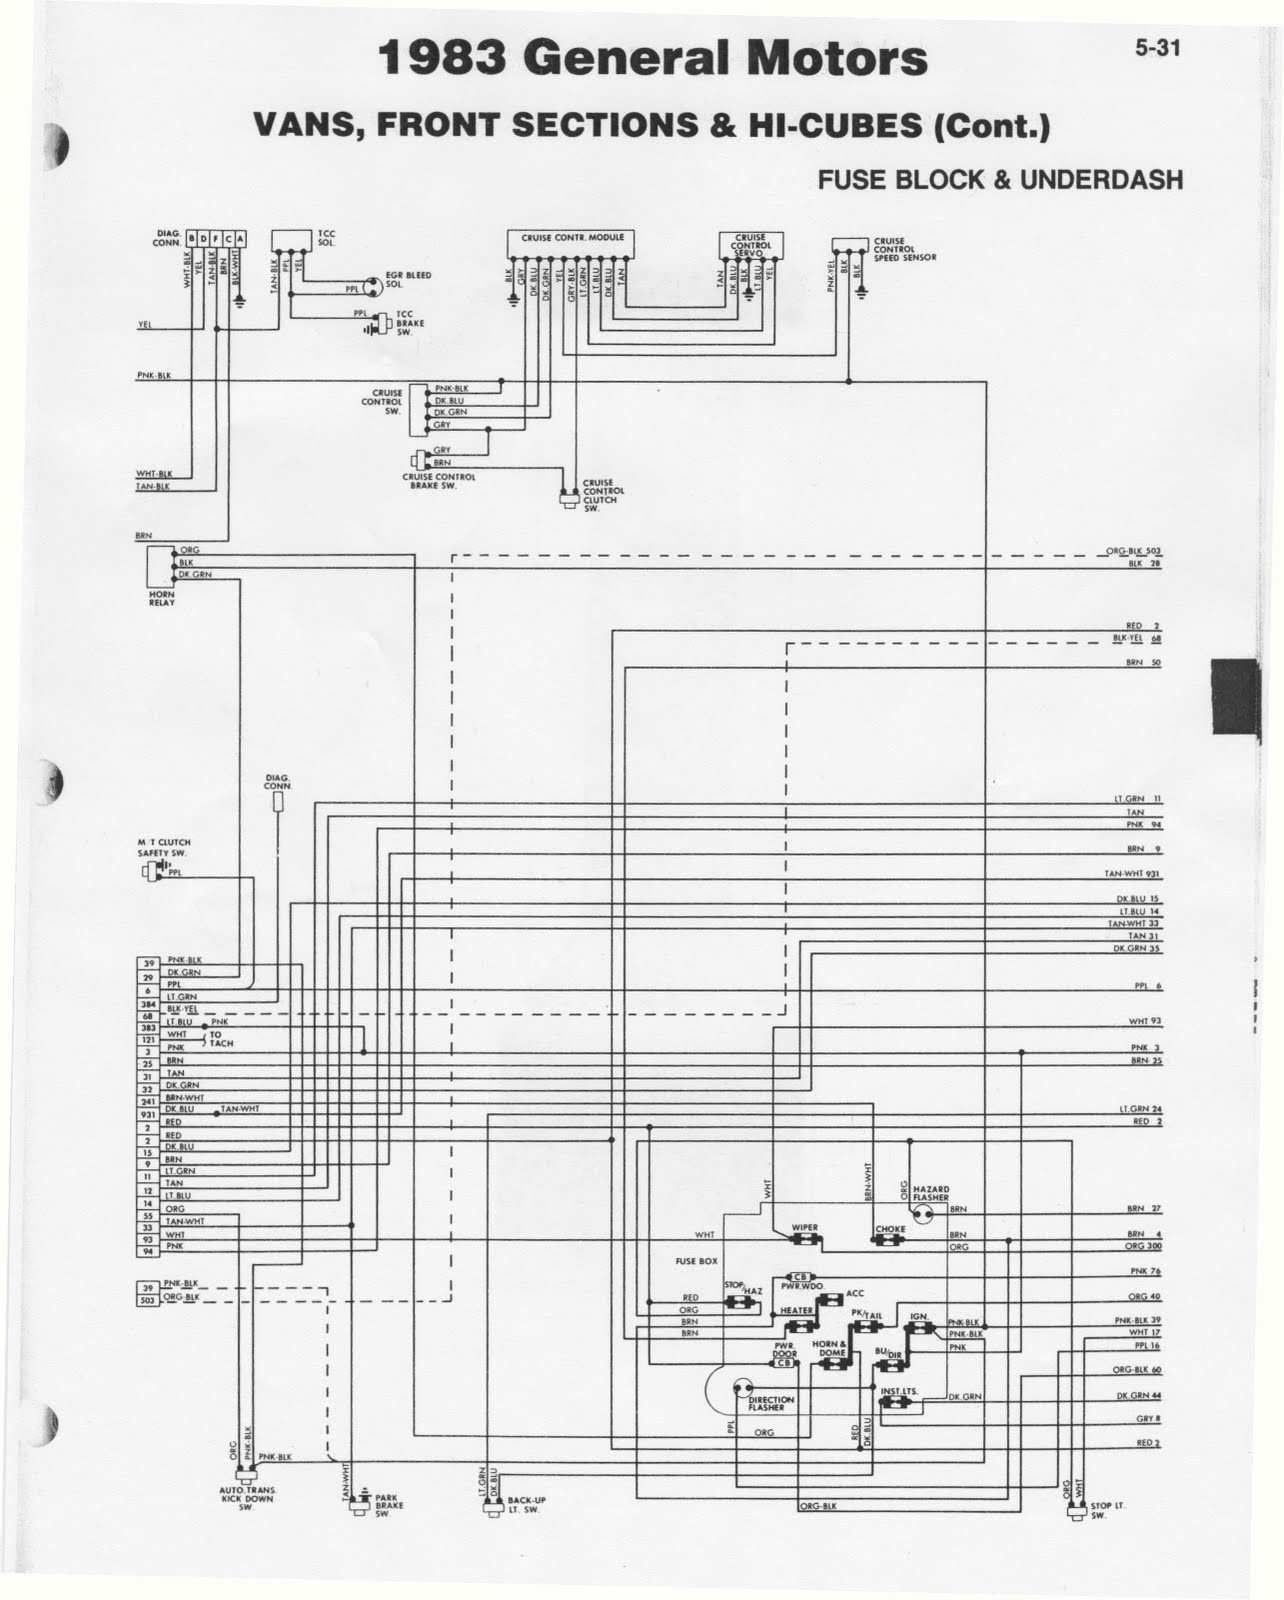 fleetwood rv wiring diagram Download-fleetwood motorhome wiring diagram Collection 1990 fleetwood rv wiring diagram 6 e DOWNLOAD Wiring Diagram Pics Detail Name fleetwood motorhome 6-s